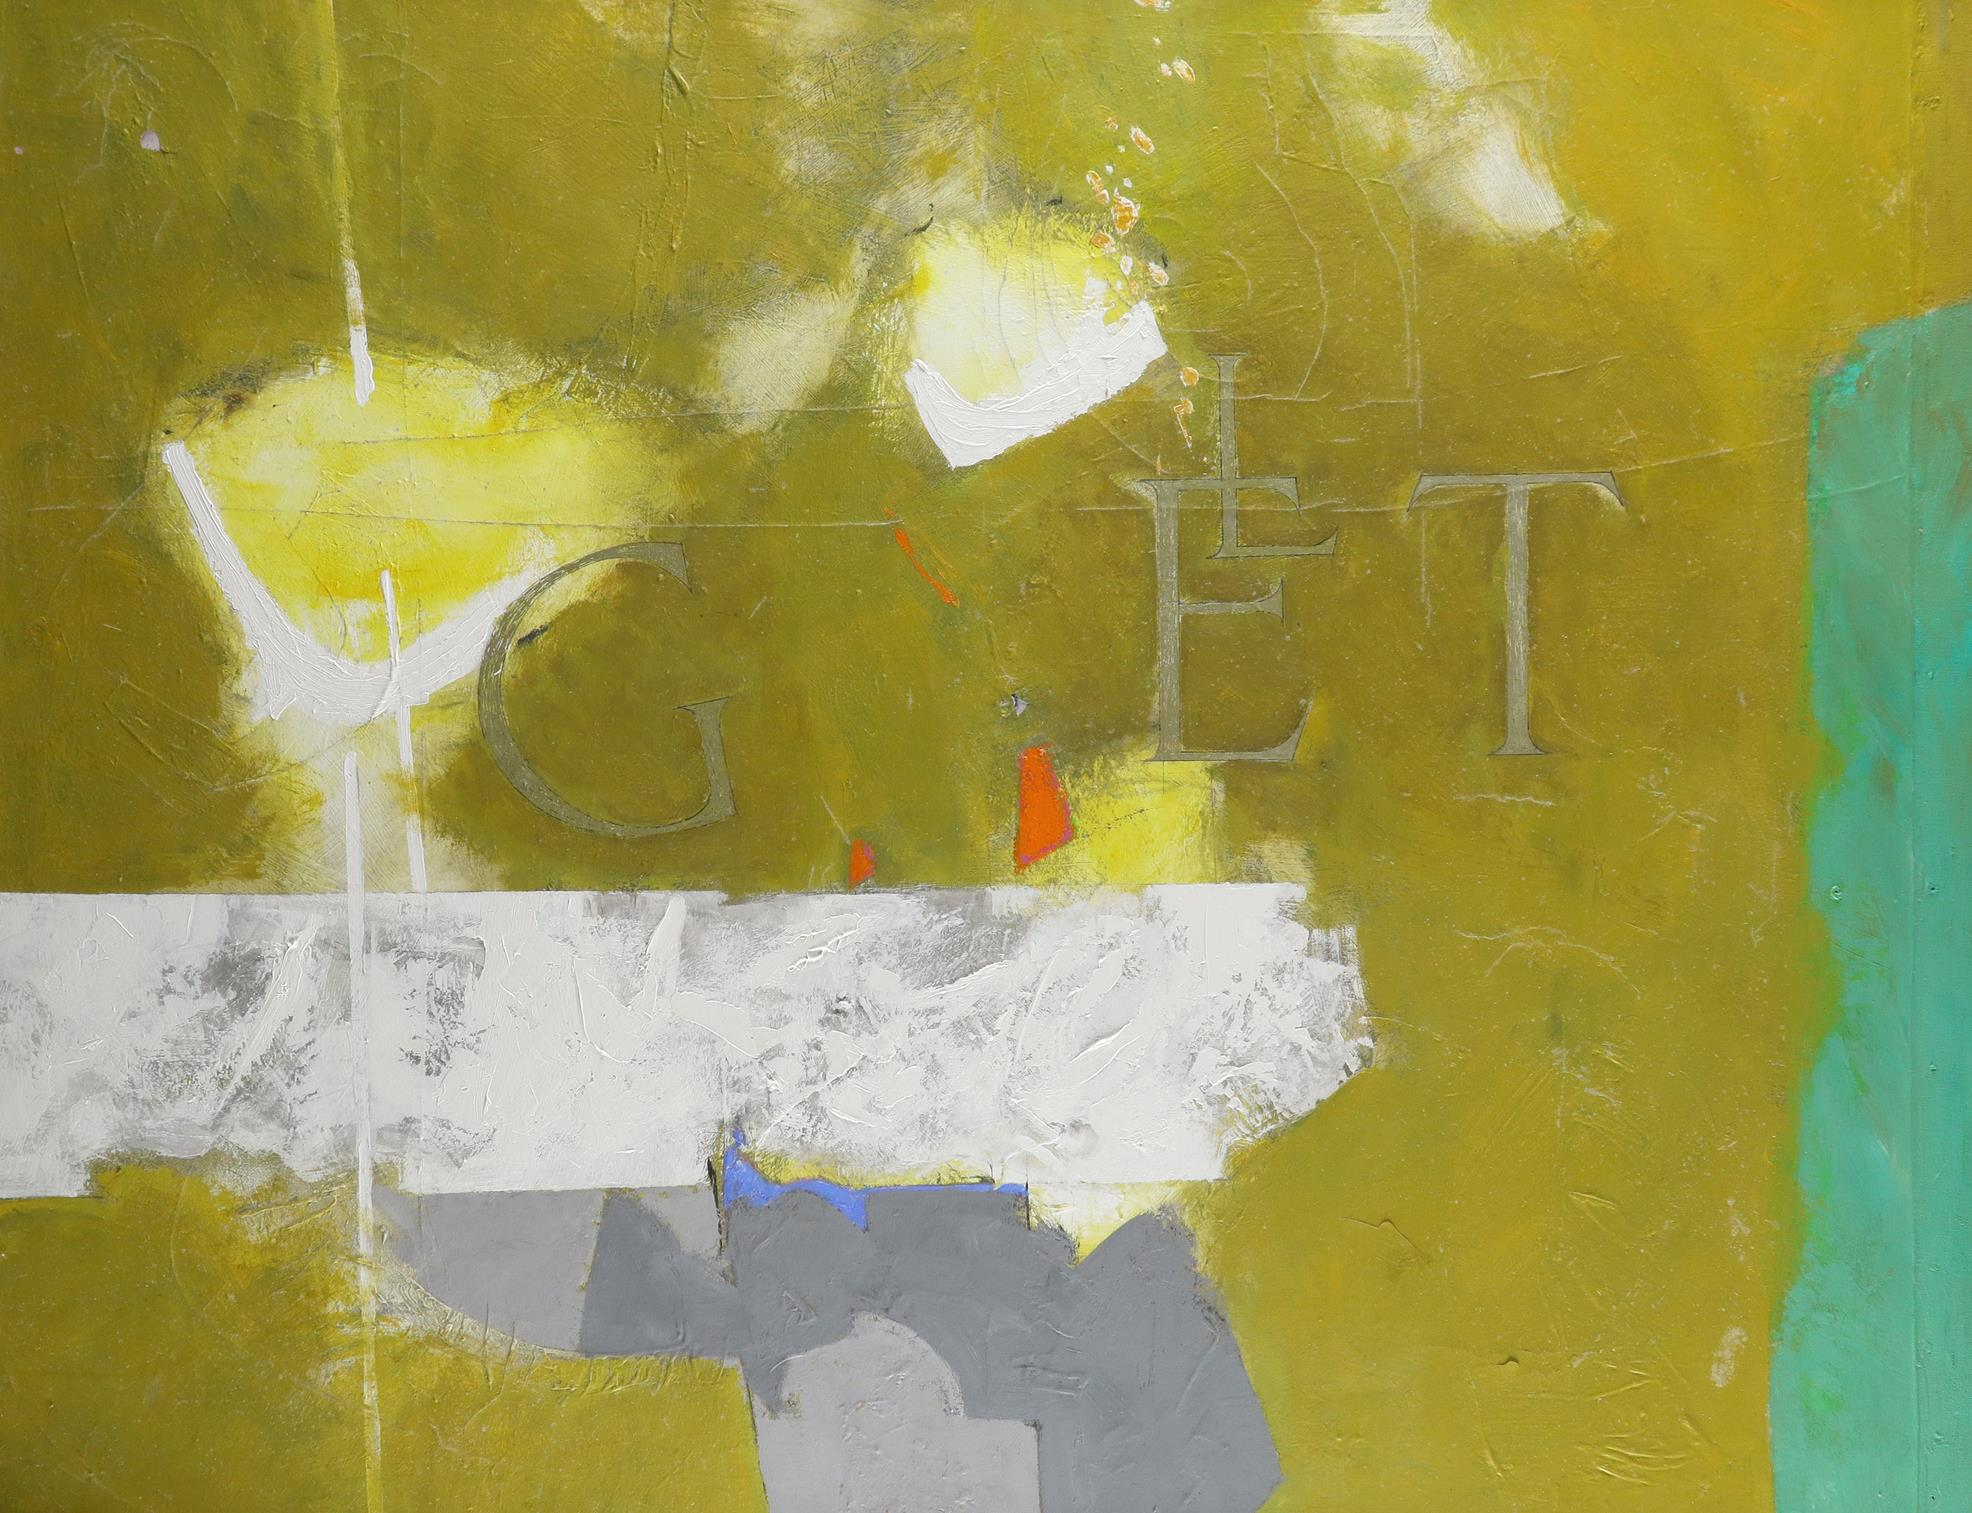 ‡Alastair Michie RWA, FRBS (Scottish 1921-2008) G.E.L.T. Signed Alastair Michie also titled and